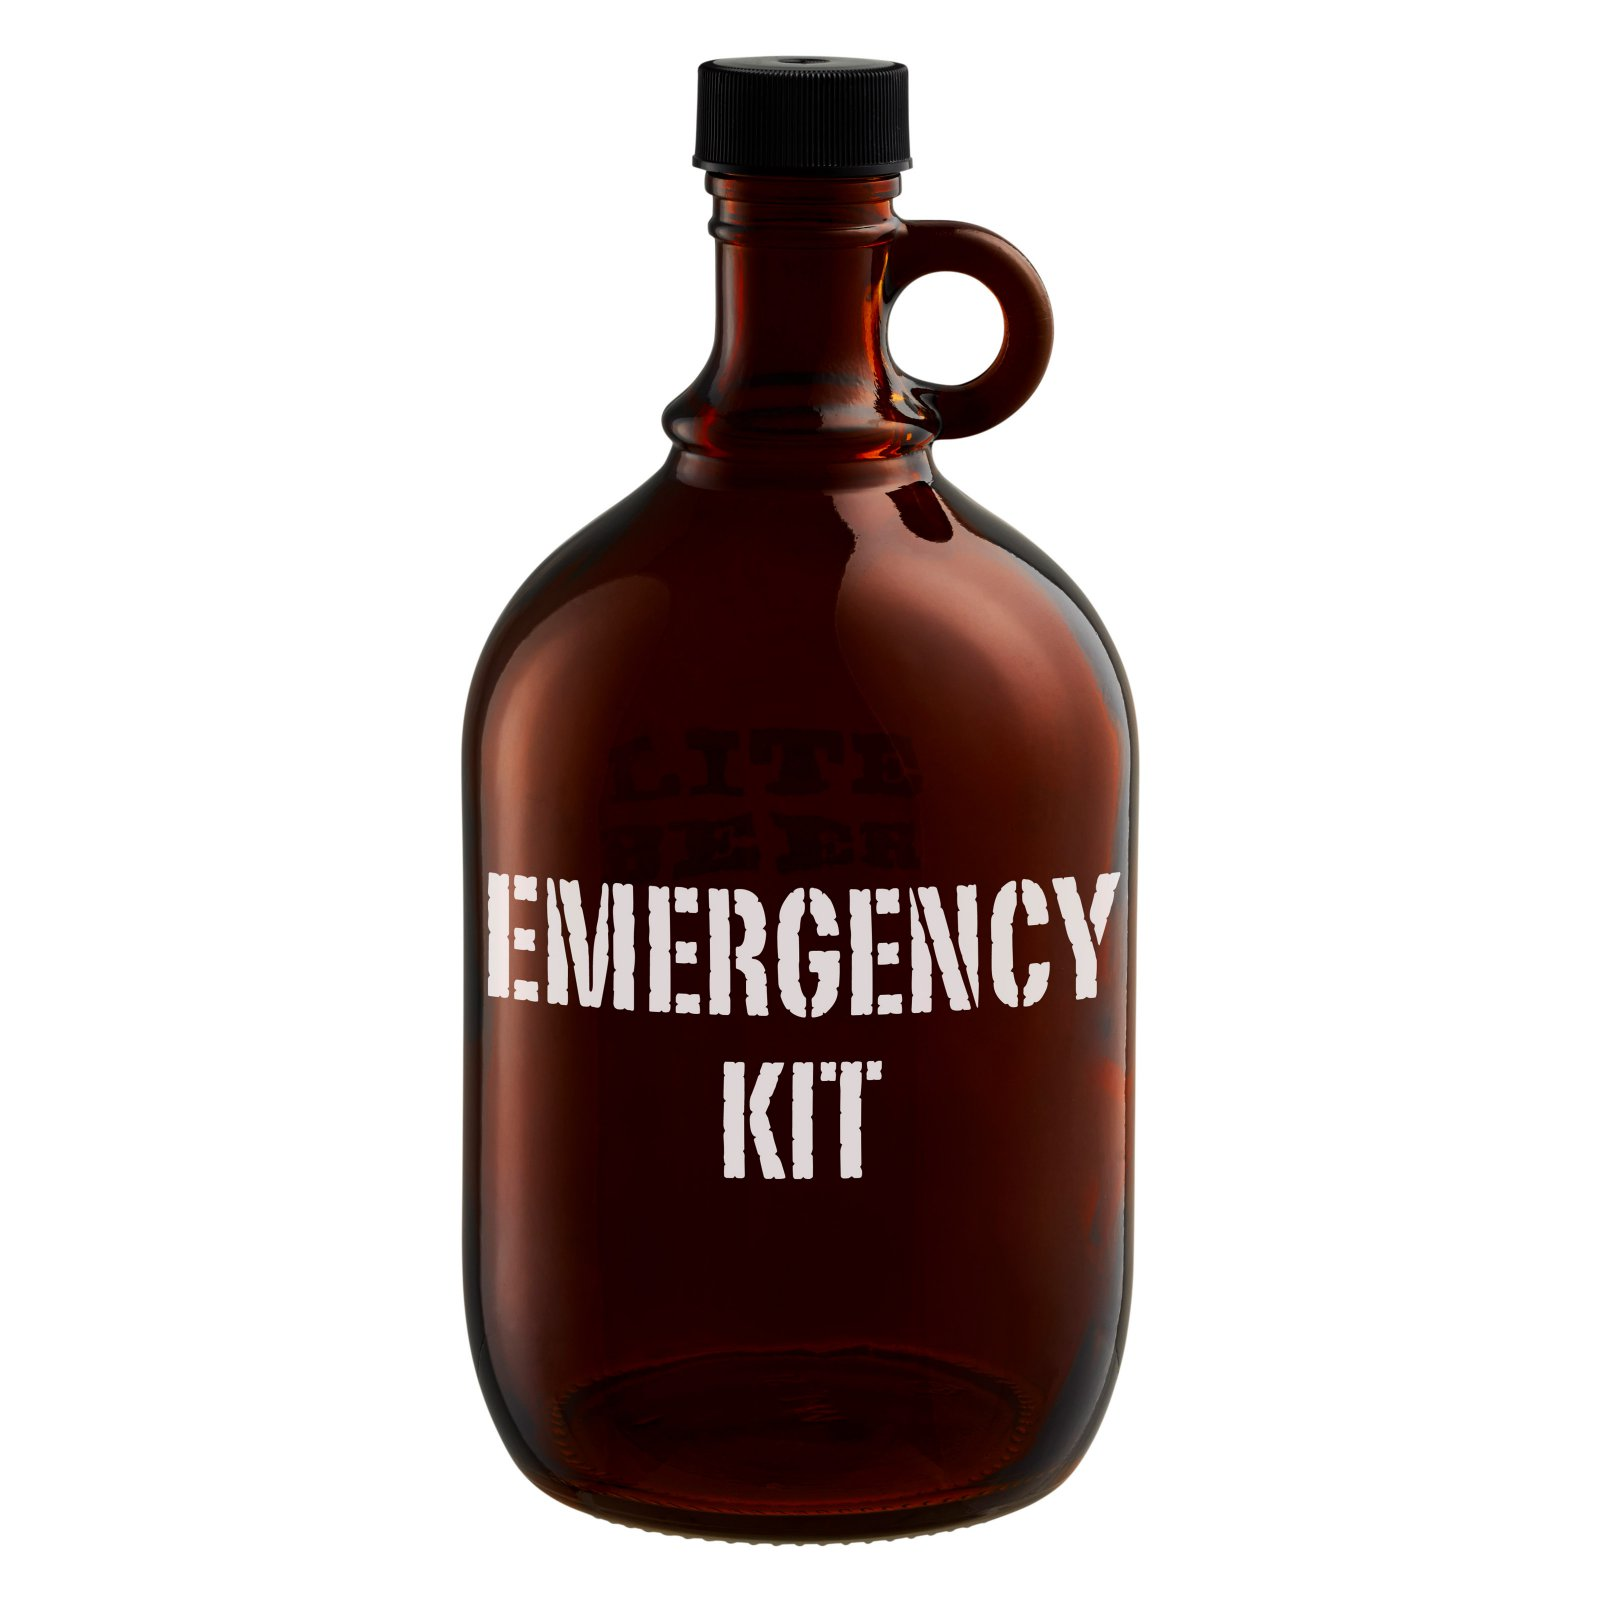 Artland Barkeep Emergency Kit Beer Growler